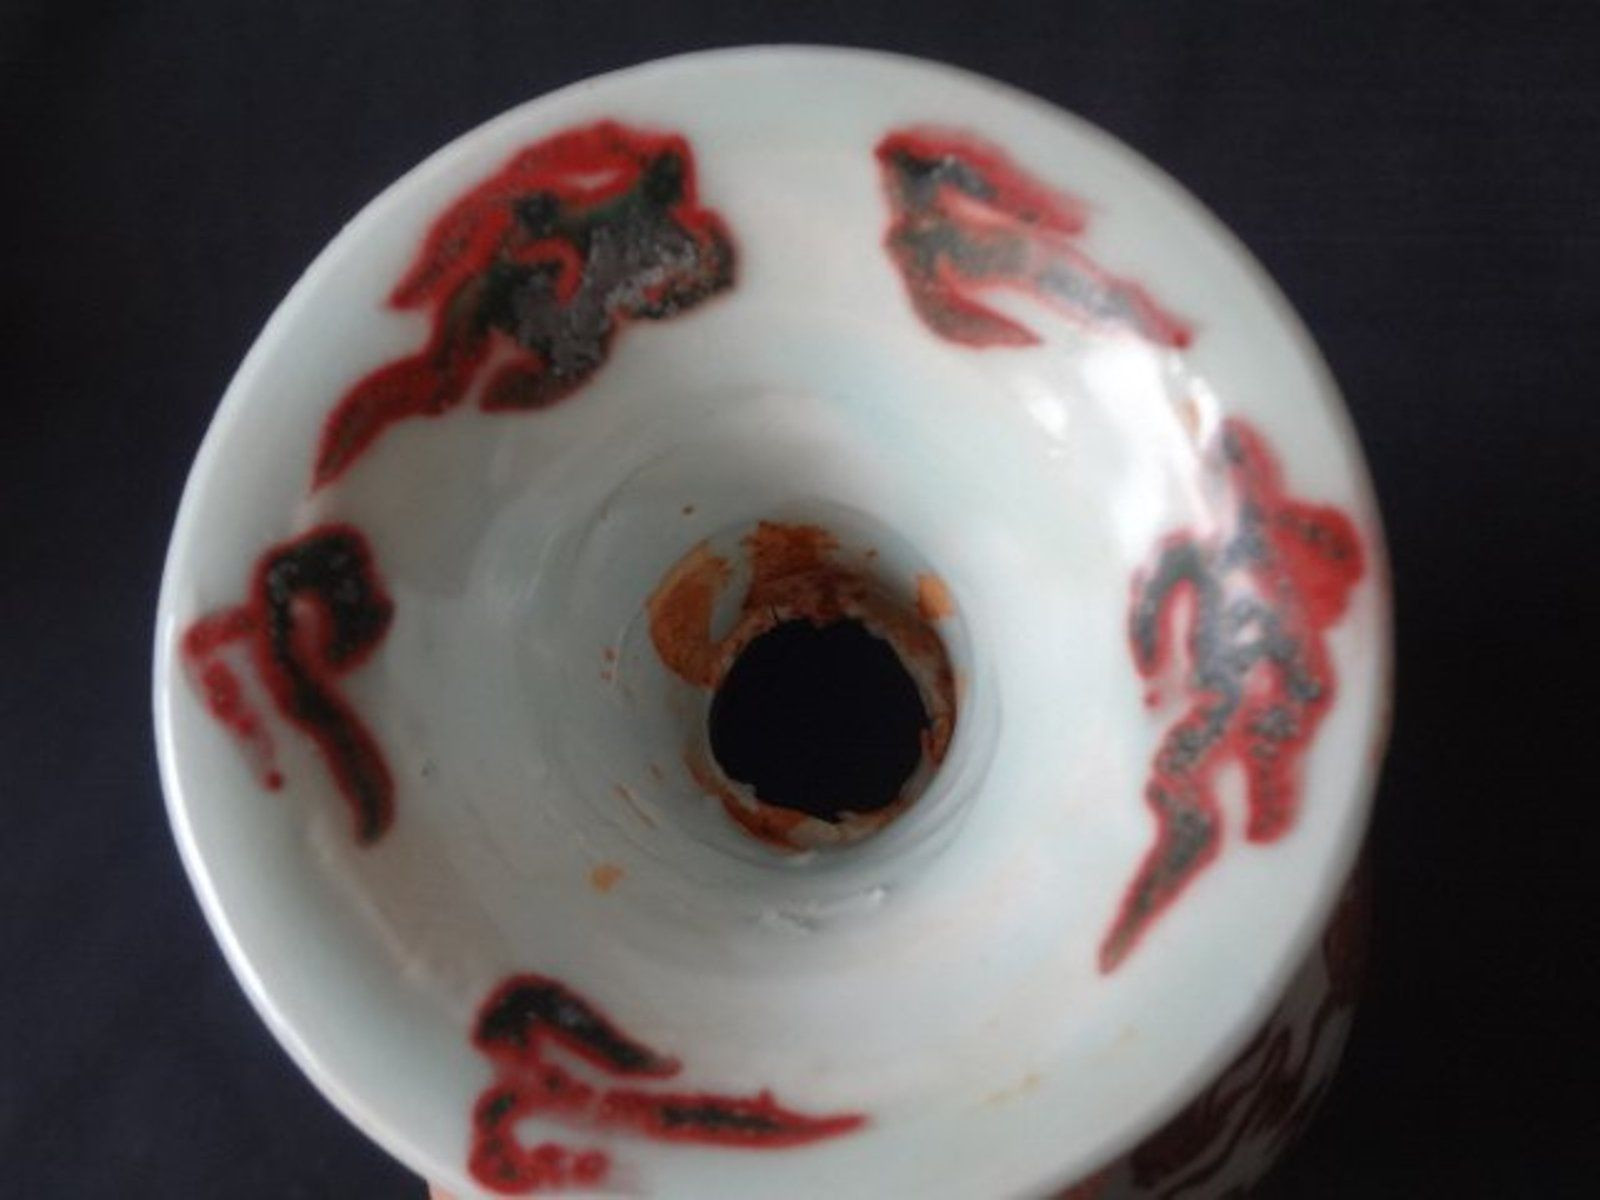 chinese red lacquer vase of lot rare yuan dynasty underglaze red dragon vase lot number 0050 inside lot rare yuan dynasty underglaze red dragon vase lot number 0050 starting